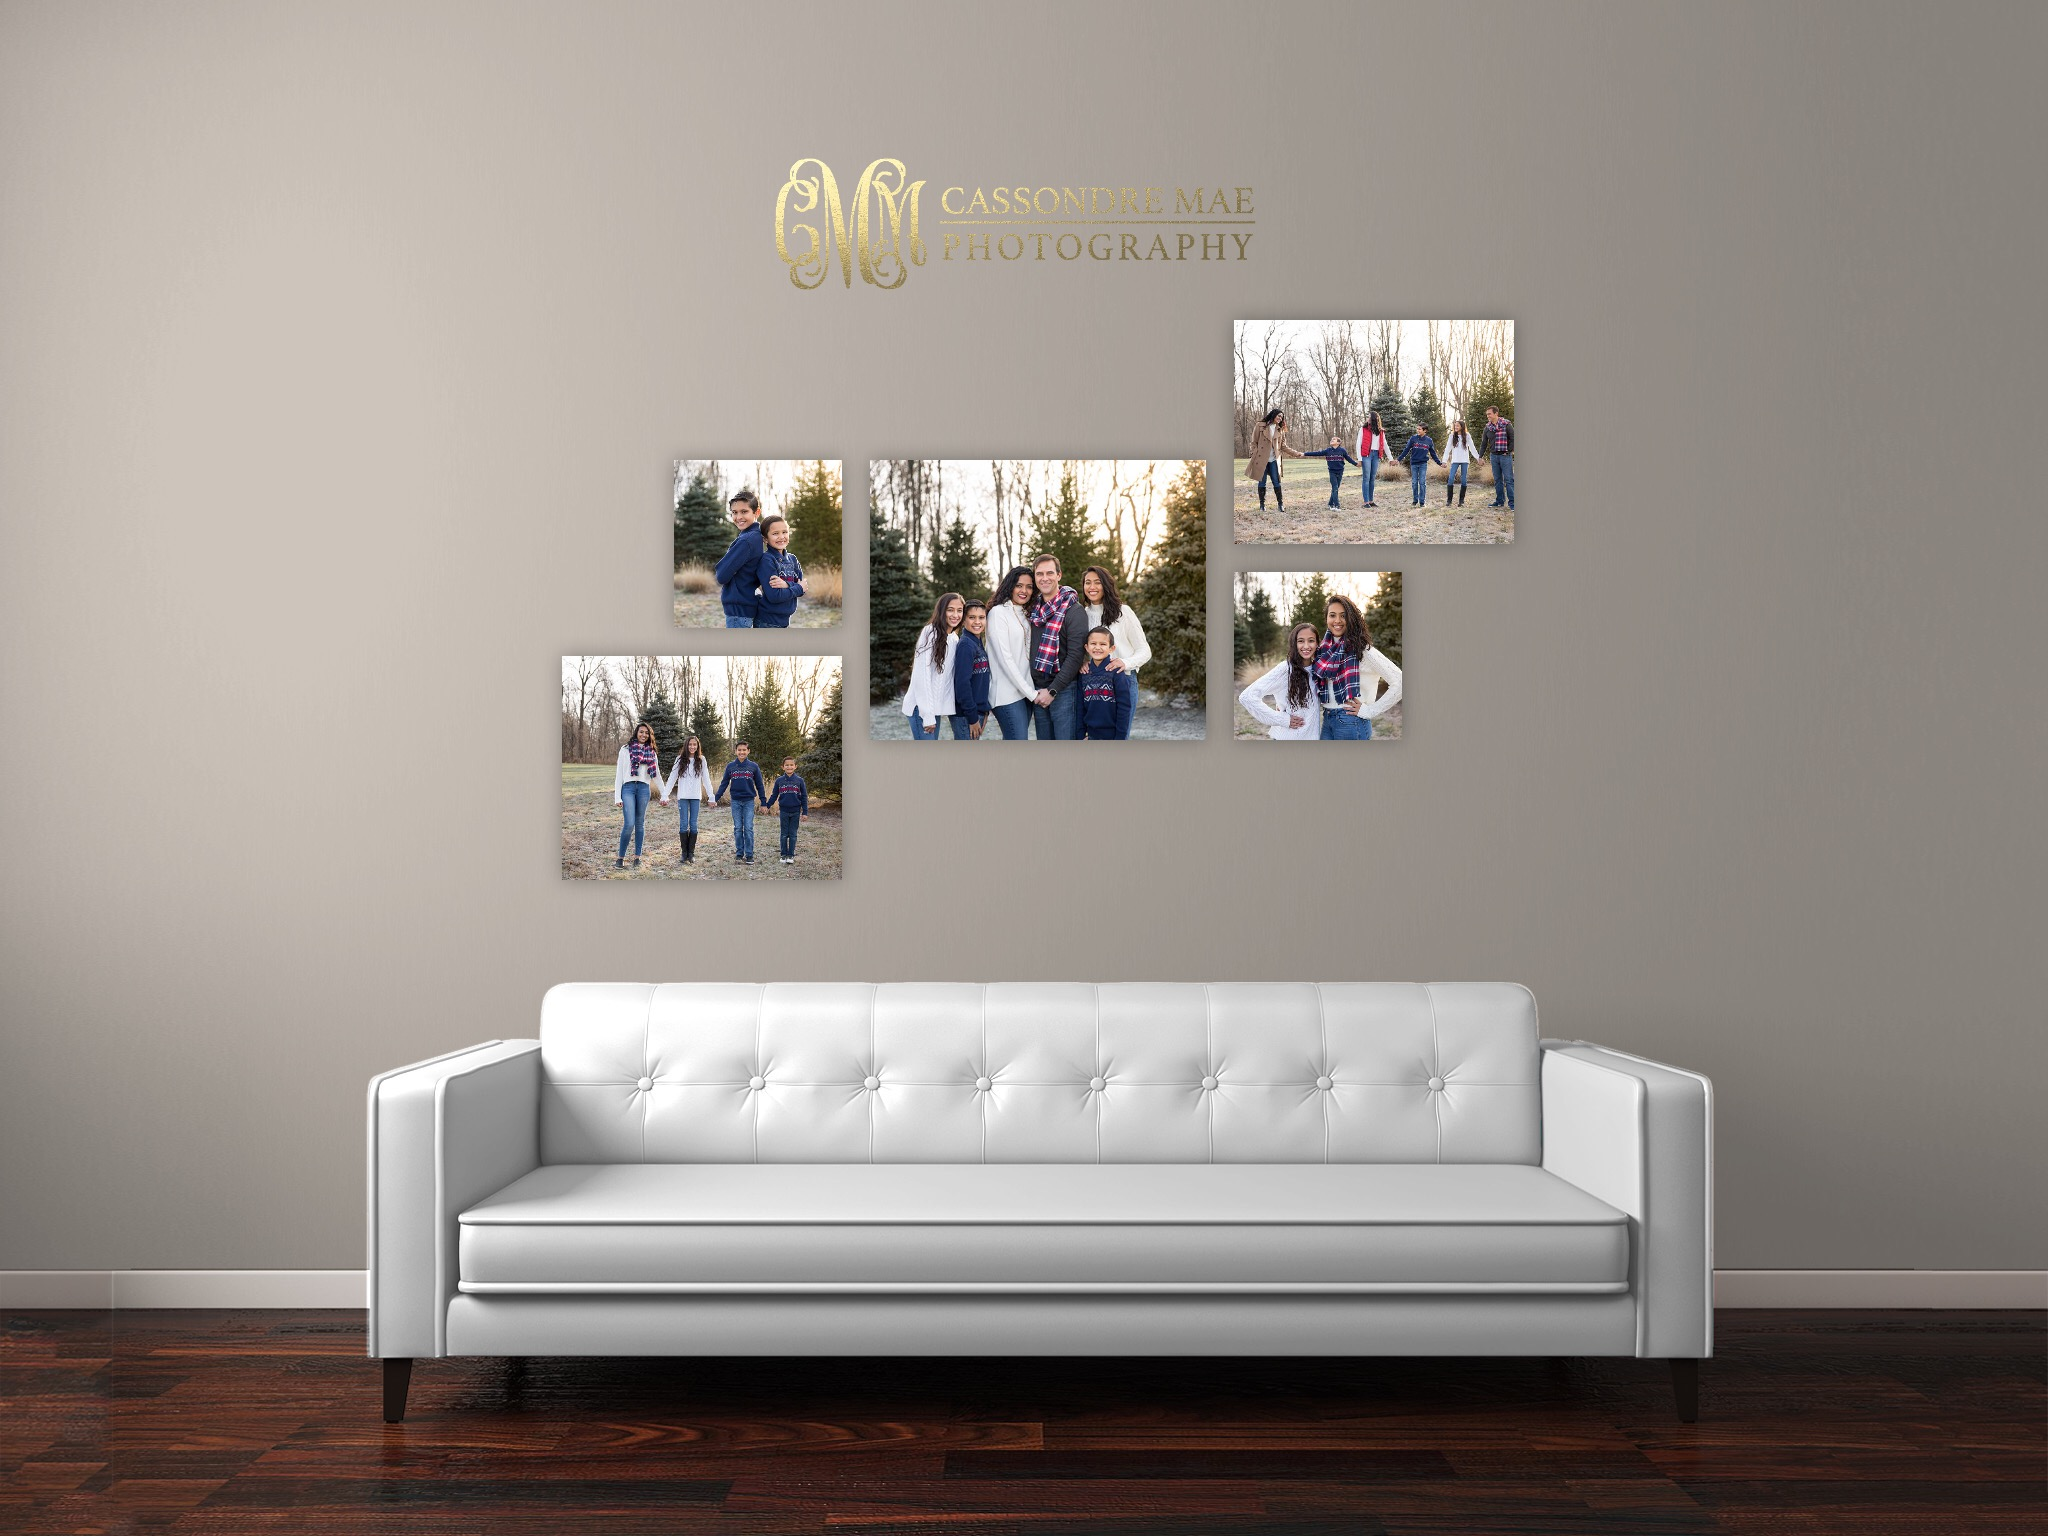 :: The Artsy Collection :: This collection comes with your choice of our premium Canvas Wraps or our sleek Vivid Metal prints. Choose the one to fit your style and show of your photos in a true gallery experience! Sizes Included:  2-12x12's, 2-16x20's, 1-20x24